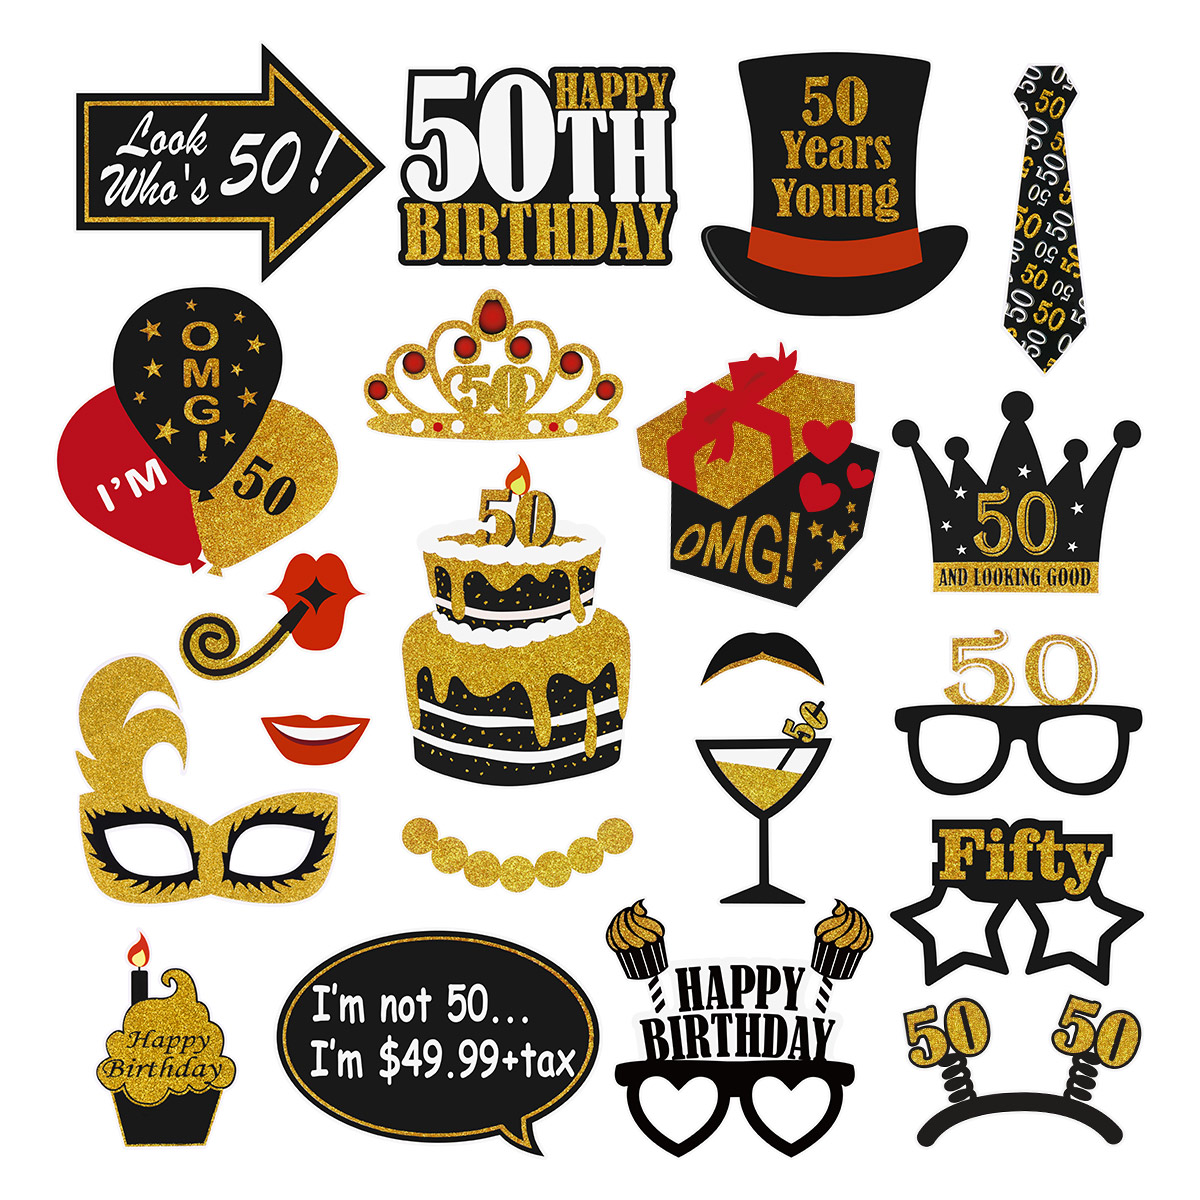 21PCS Funny <font><b>50th</b></font> <font><b>Birthday</b></font> Creative Black Gold Party Supplies Photo Props Party <font><b>Decoration</b></font> for Events Photographing Adults A30 image